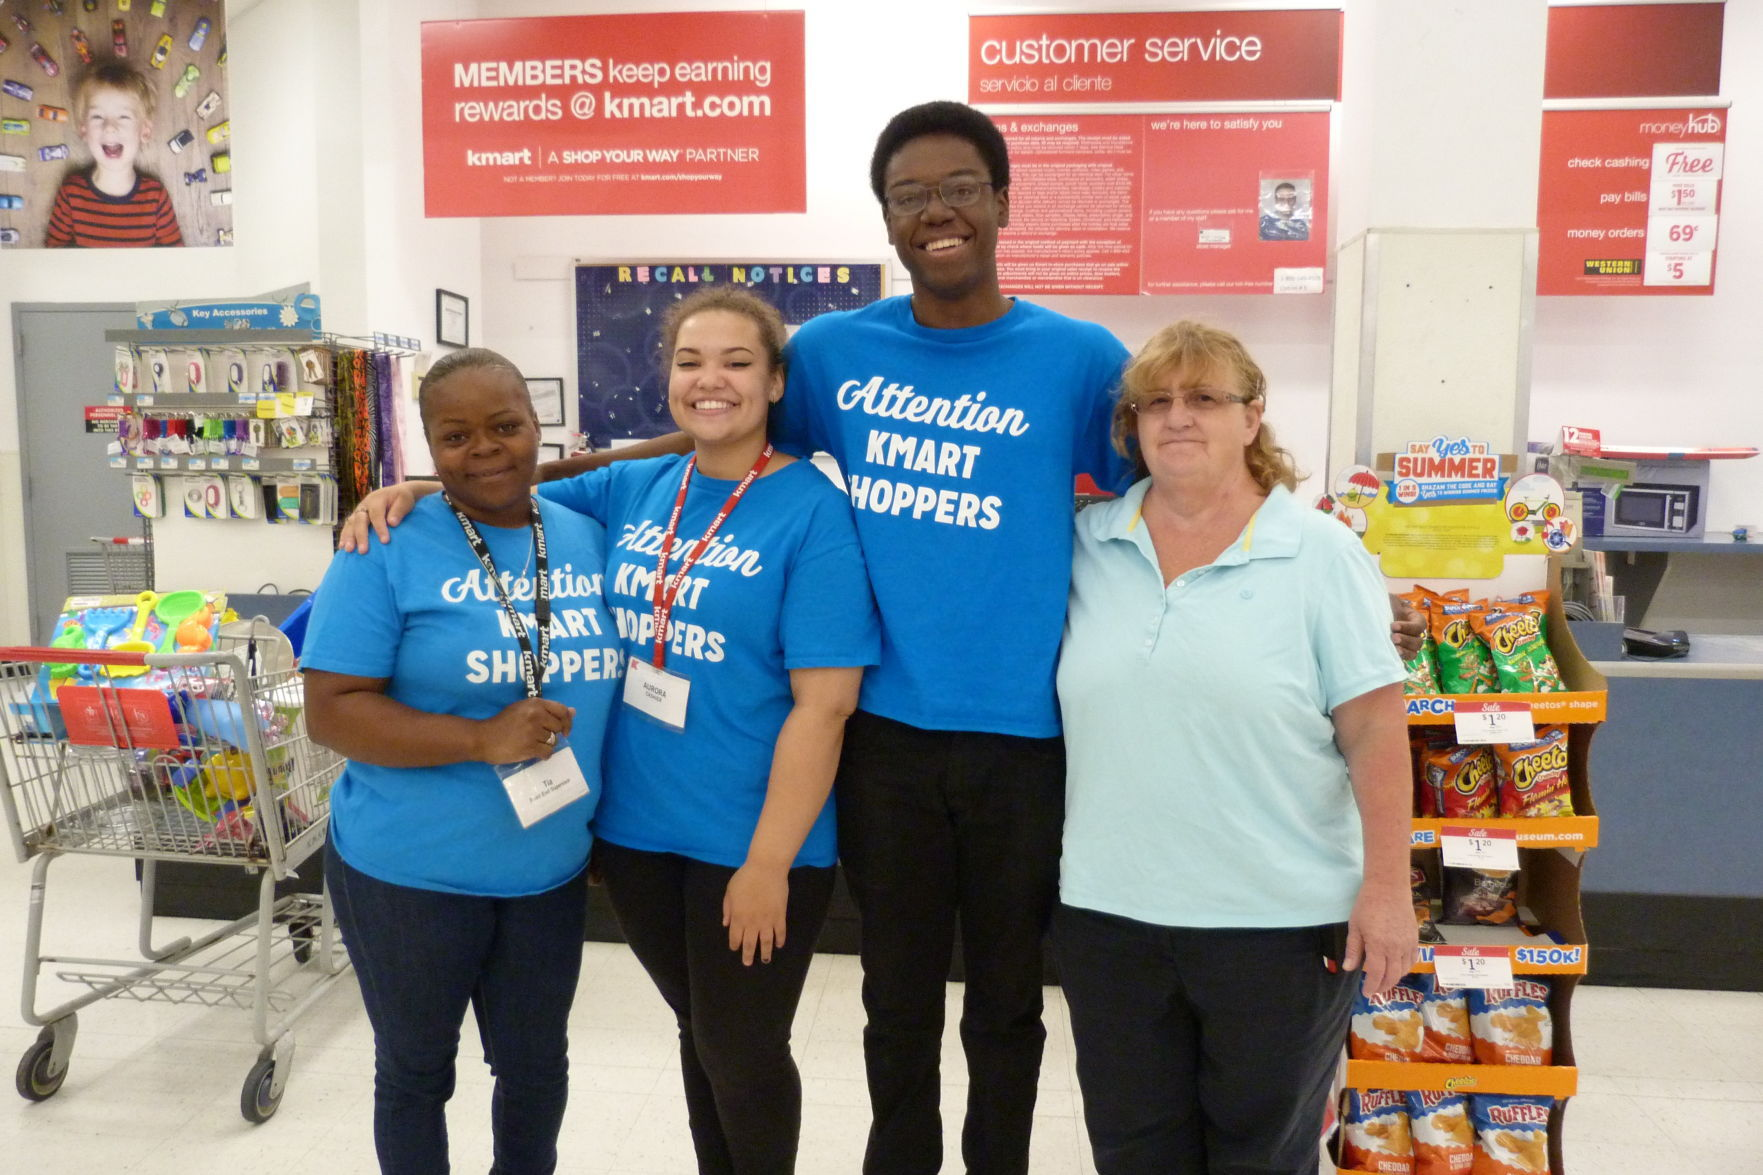 Kmart Careers Somers Point Kmart Is Keeping The Customers Happy Mainland